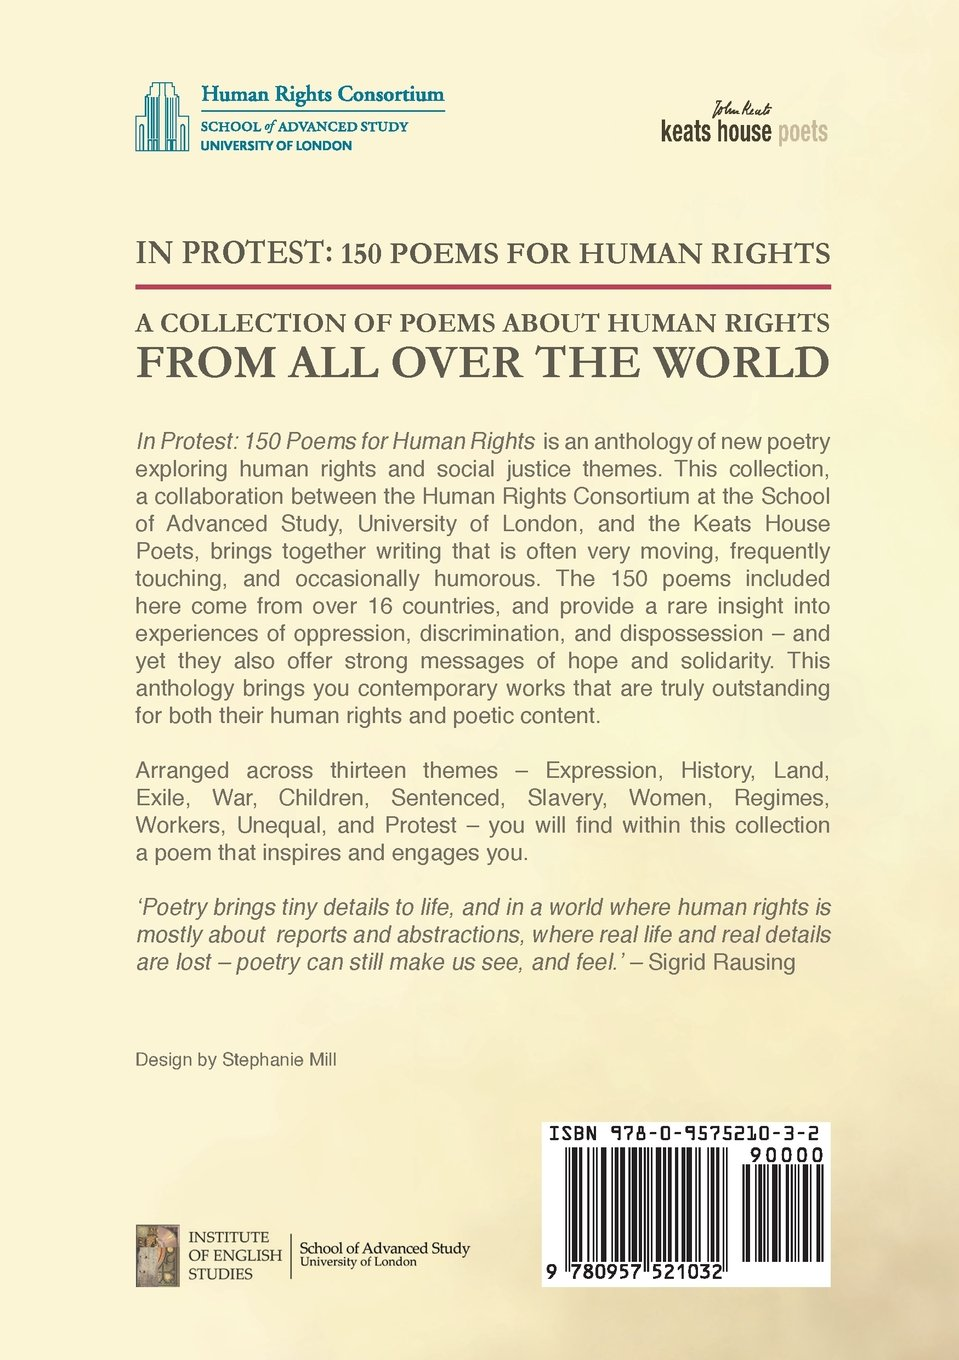 In Protest: 150 Poems for Human Rights: Sigrid Rausing, Ruth